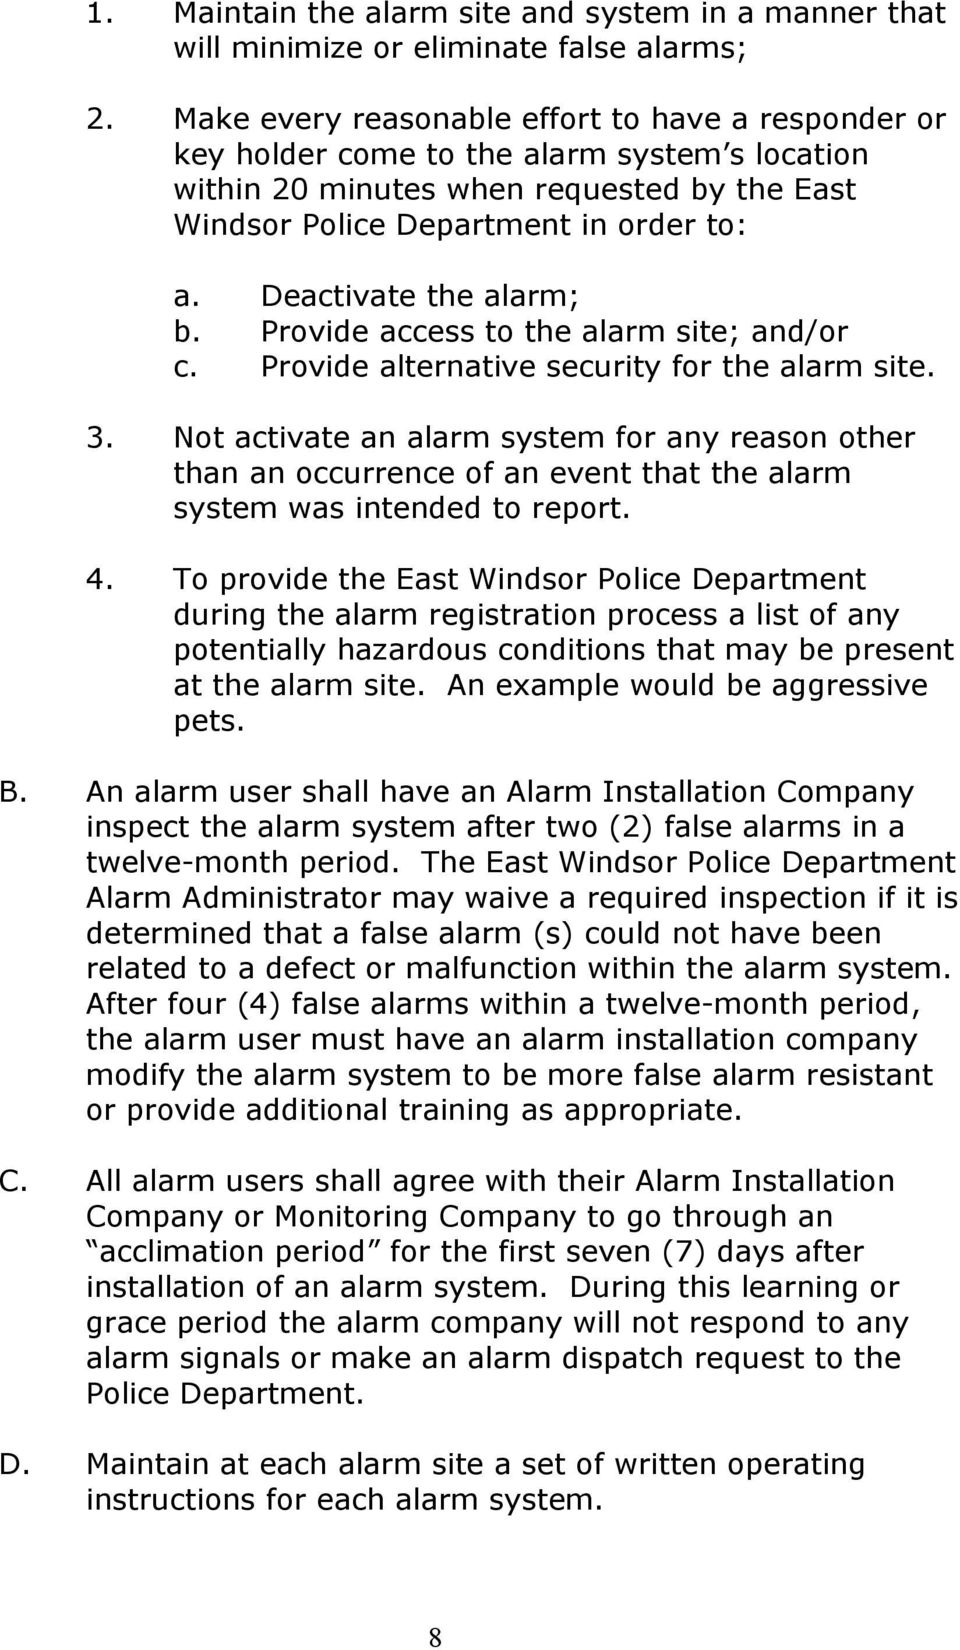 Deactivate the alarm; b. Provide access to the alarm site; and/or c. Provide alternative security for the alarm site. 3.